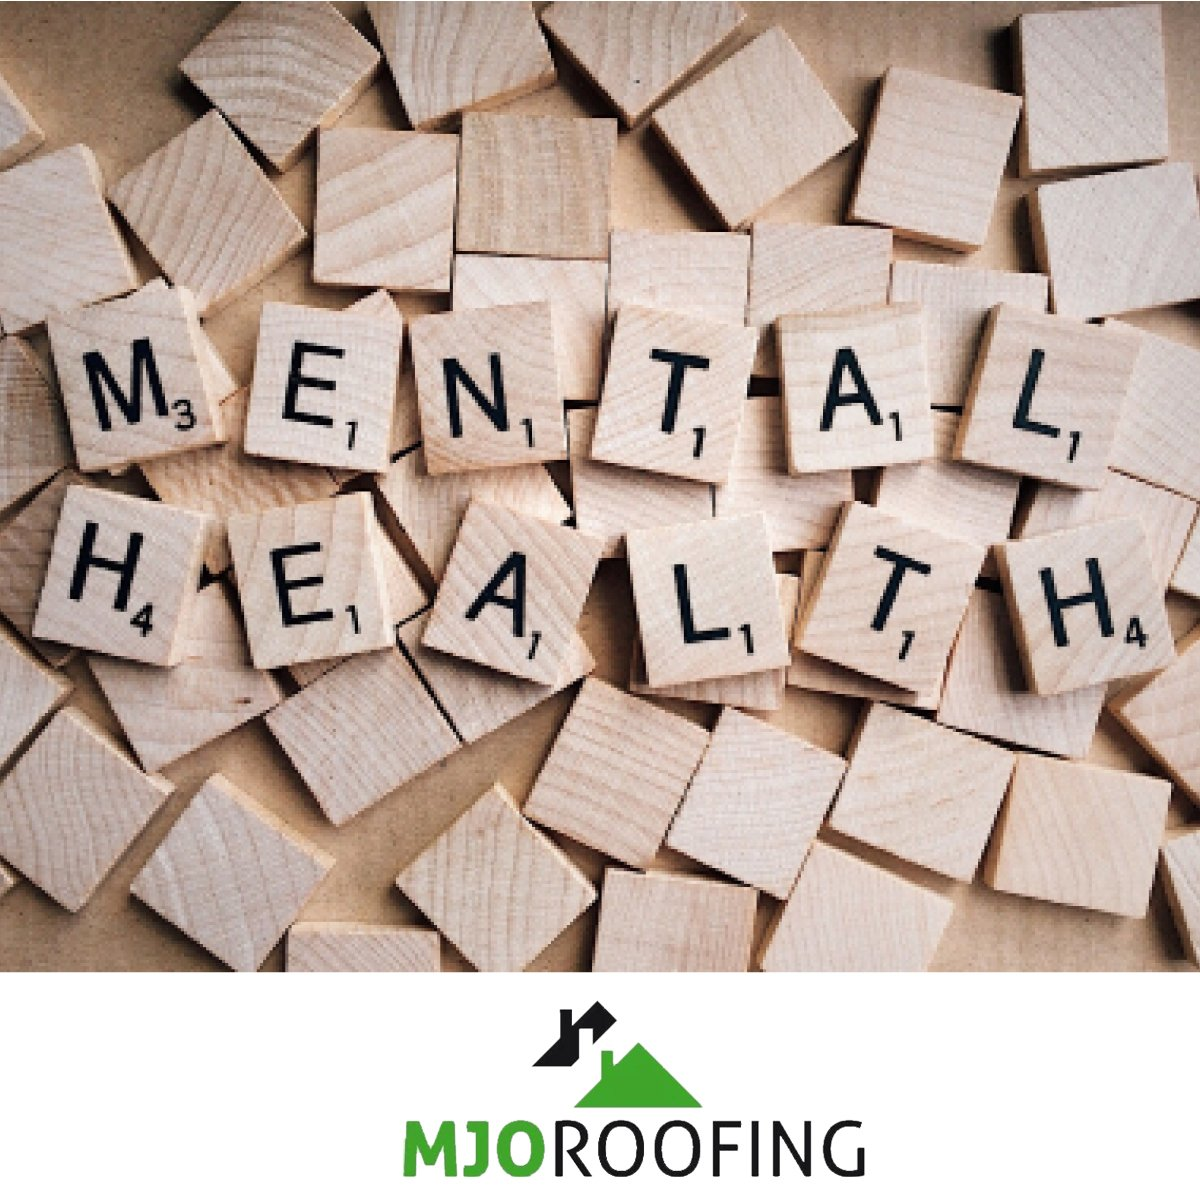 #MentalHealth shouldn't be neglected, so take a moment to fill out Construction News' survey on #construction mental health #CNMind @CNPlus https://www.surveymonkey.co.uk/r/CNMindMatters2019…